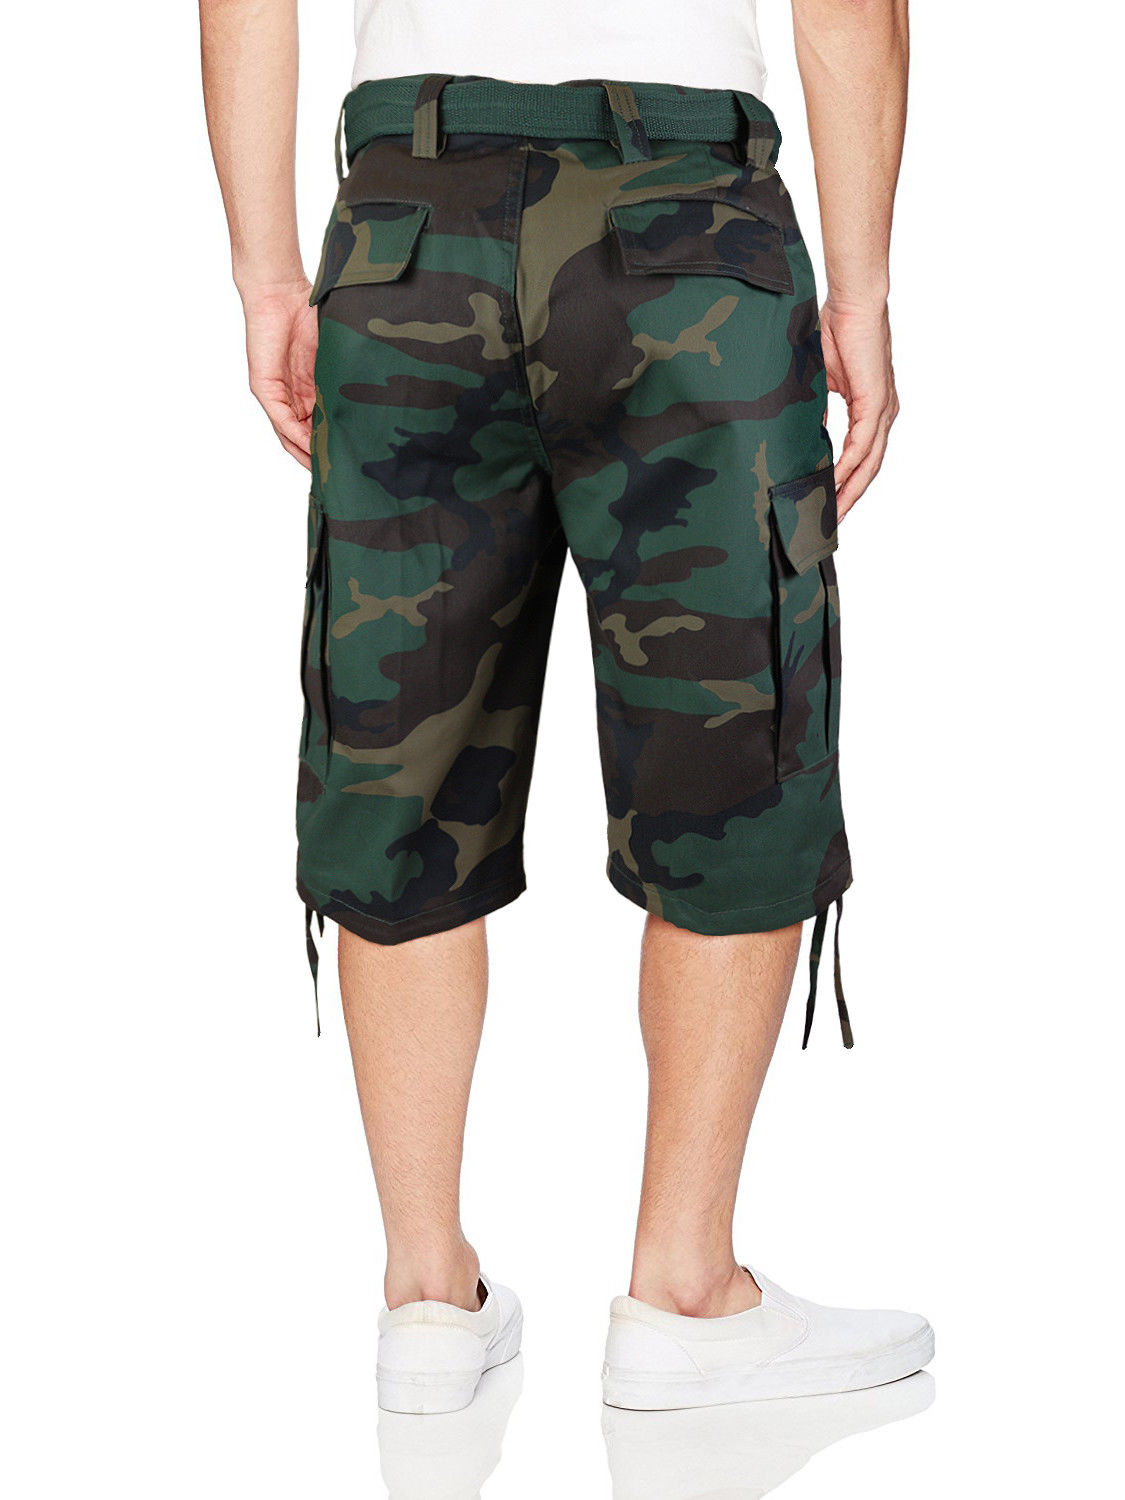 Men-039-s-Tactical-Military-Army-Camo-Camouflage-Slim-Fit-Cargo-Shorts-With-Belt thumbnail 31